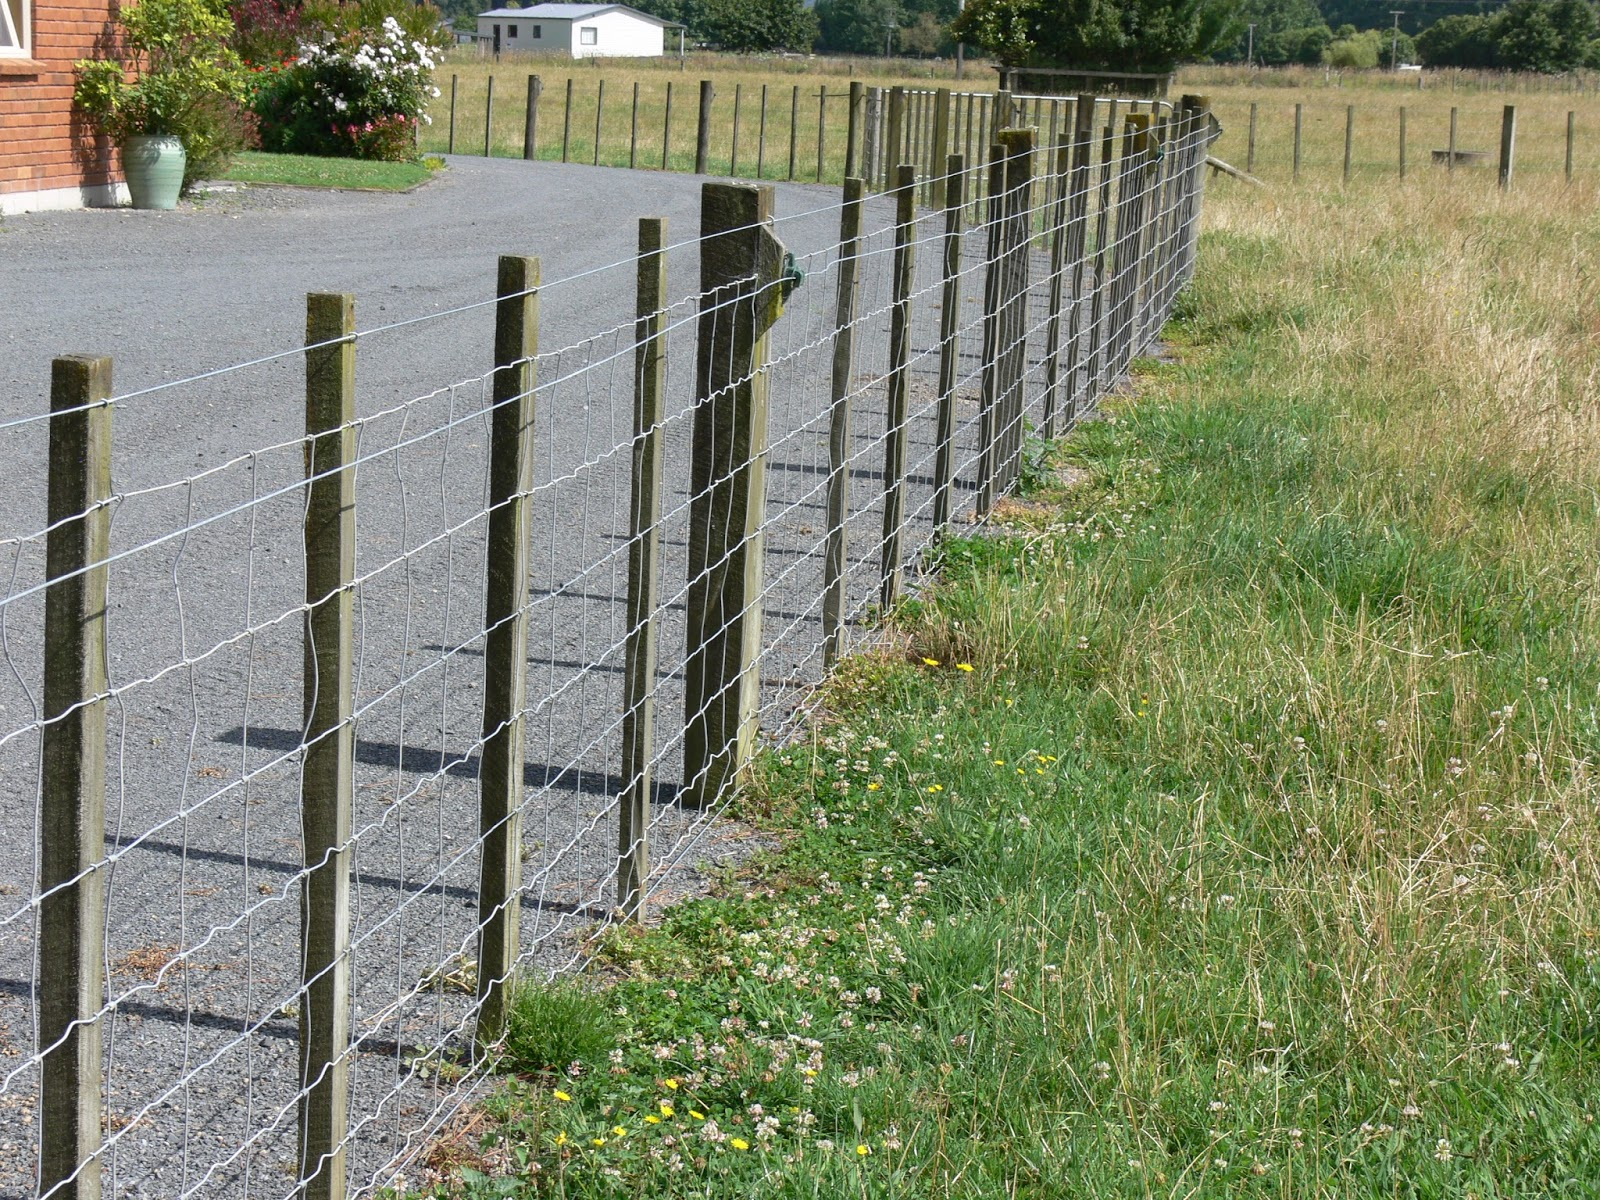 Woolshed 1: New Zealand farming. Fencing – Glossary of terms.